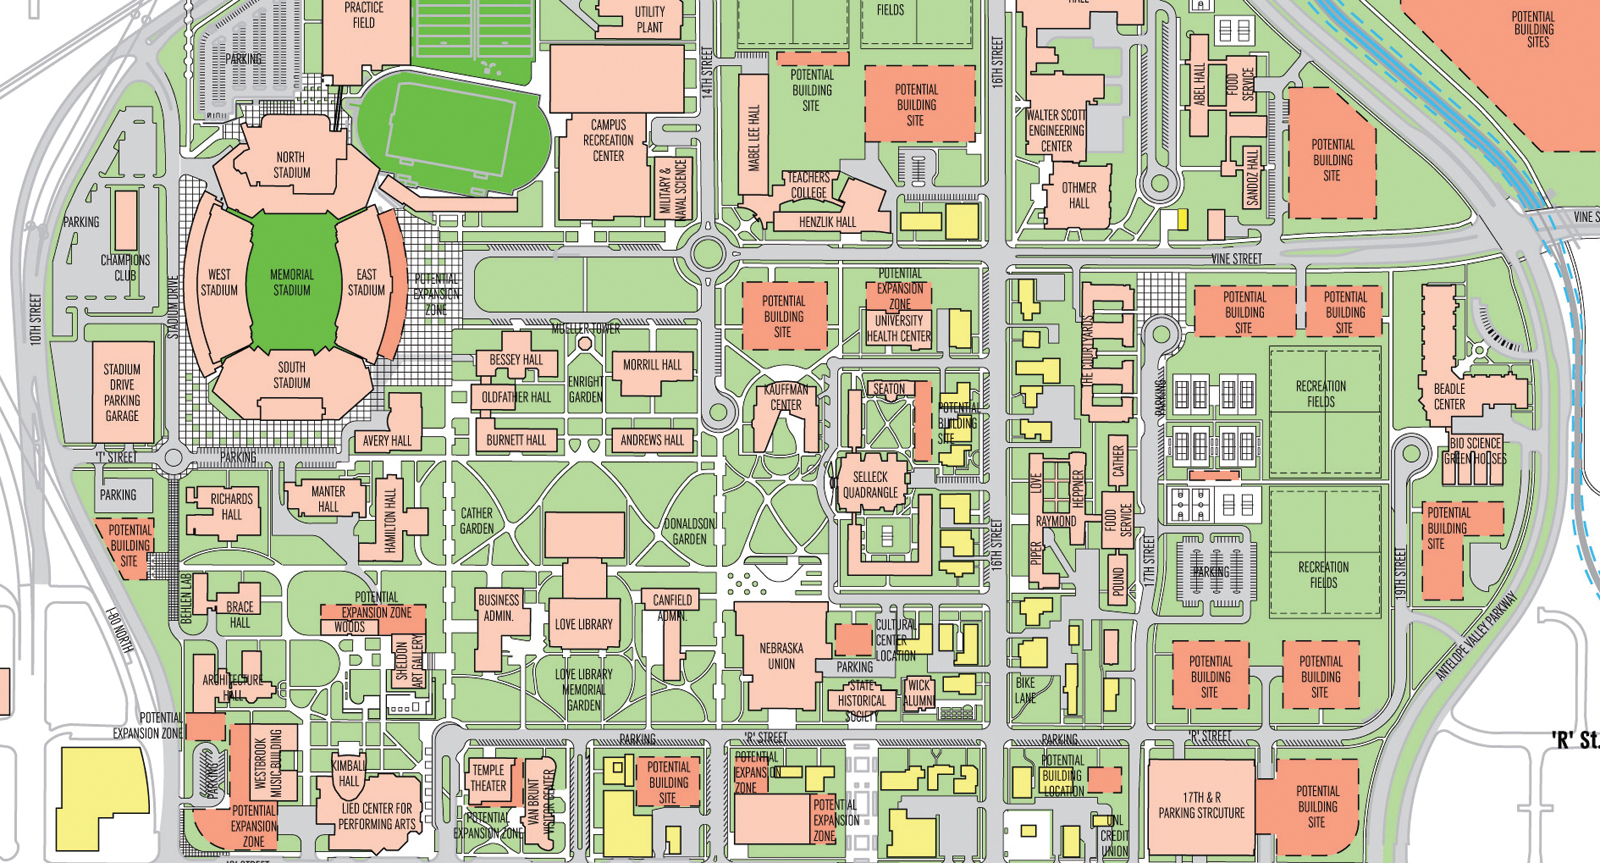 Unl City Campus Map Master plan open house sessions are Sept. 12, 13 | Announce